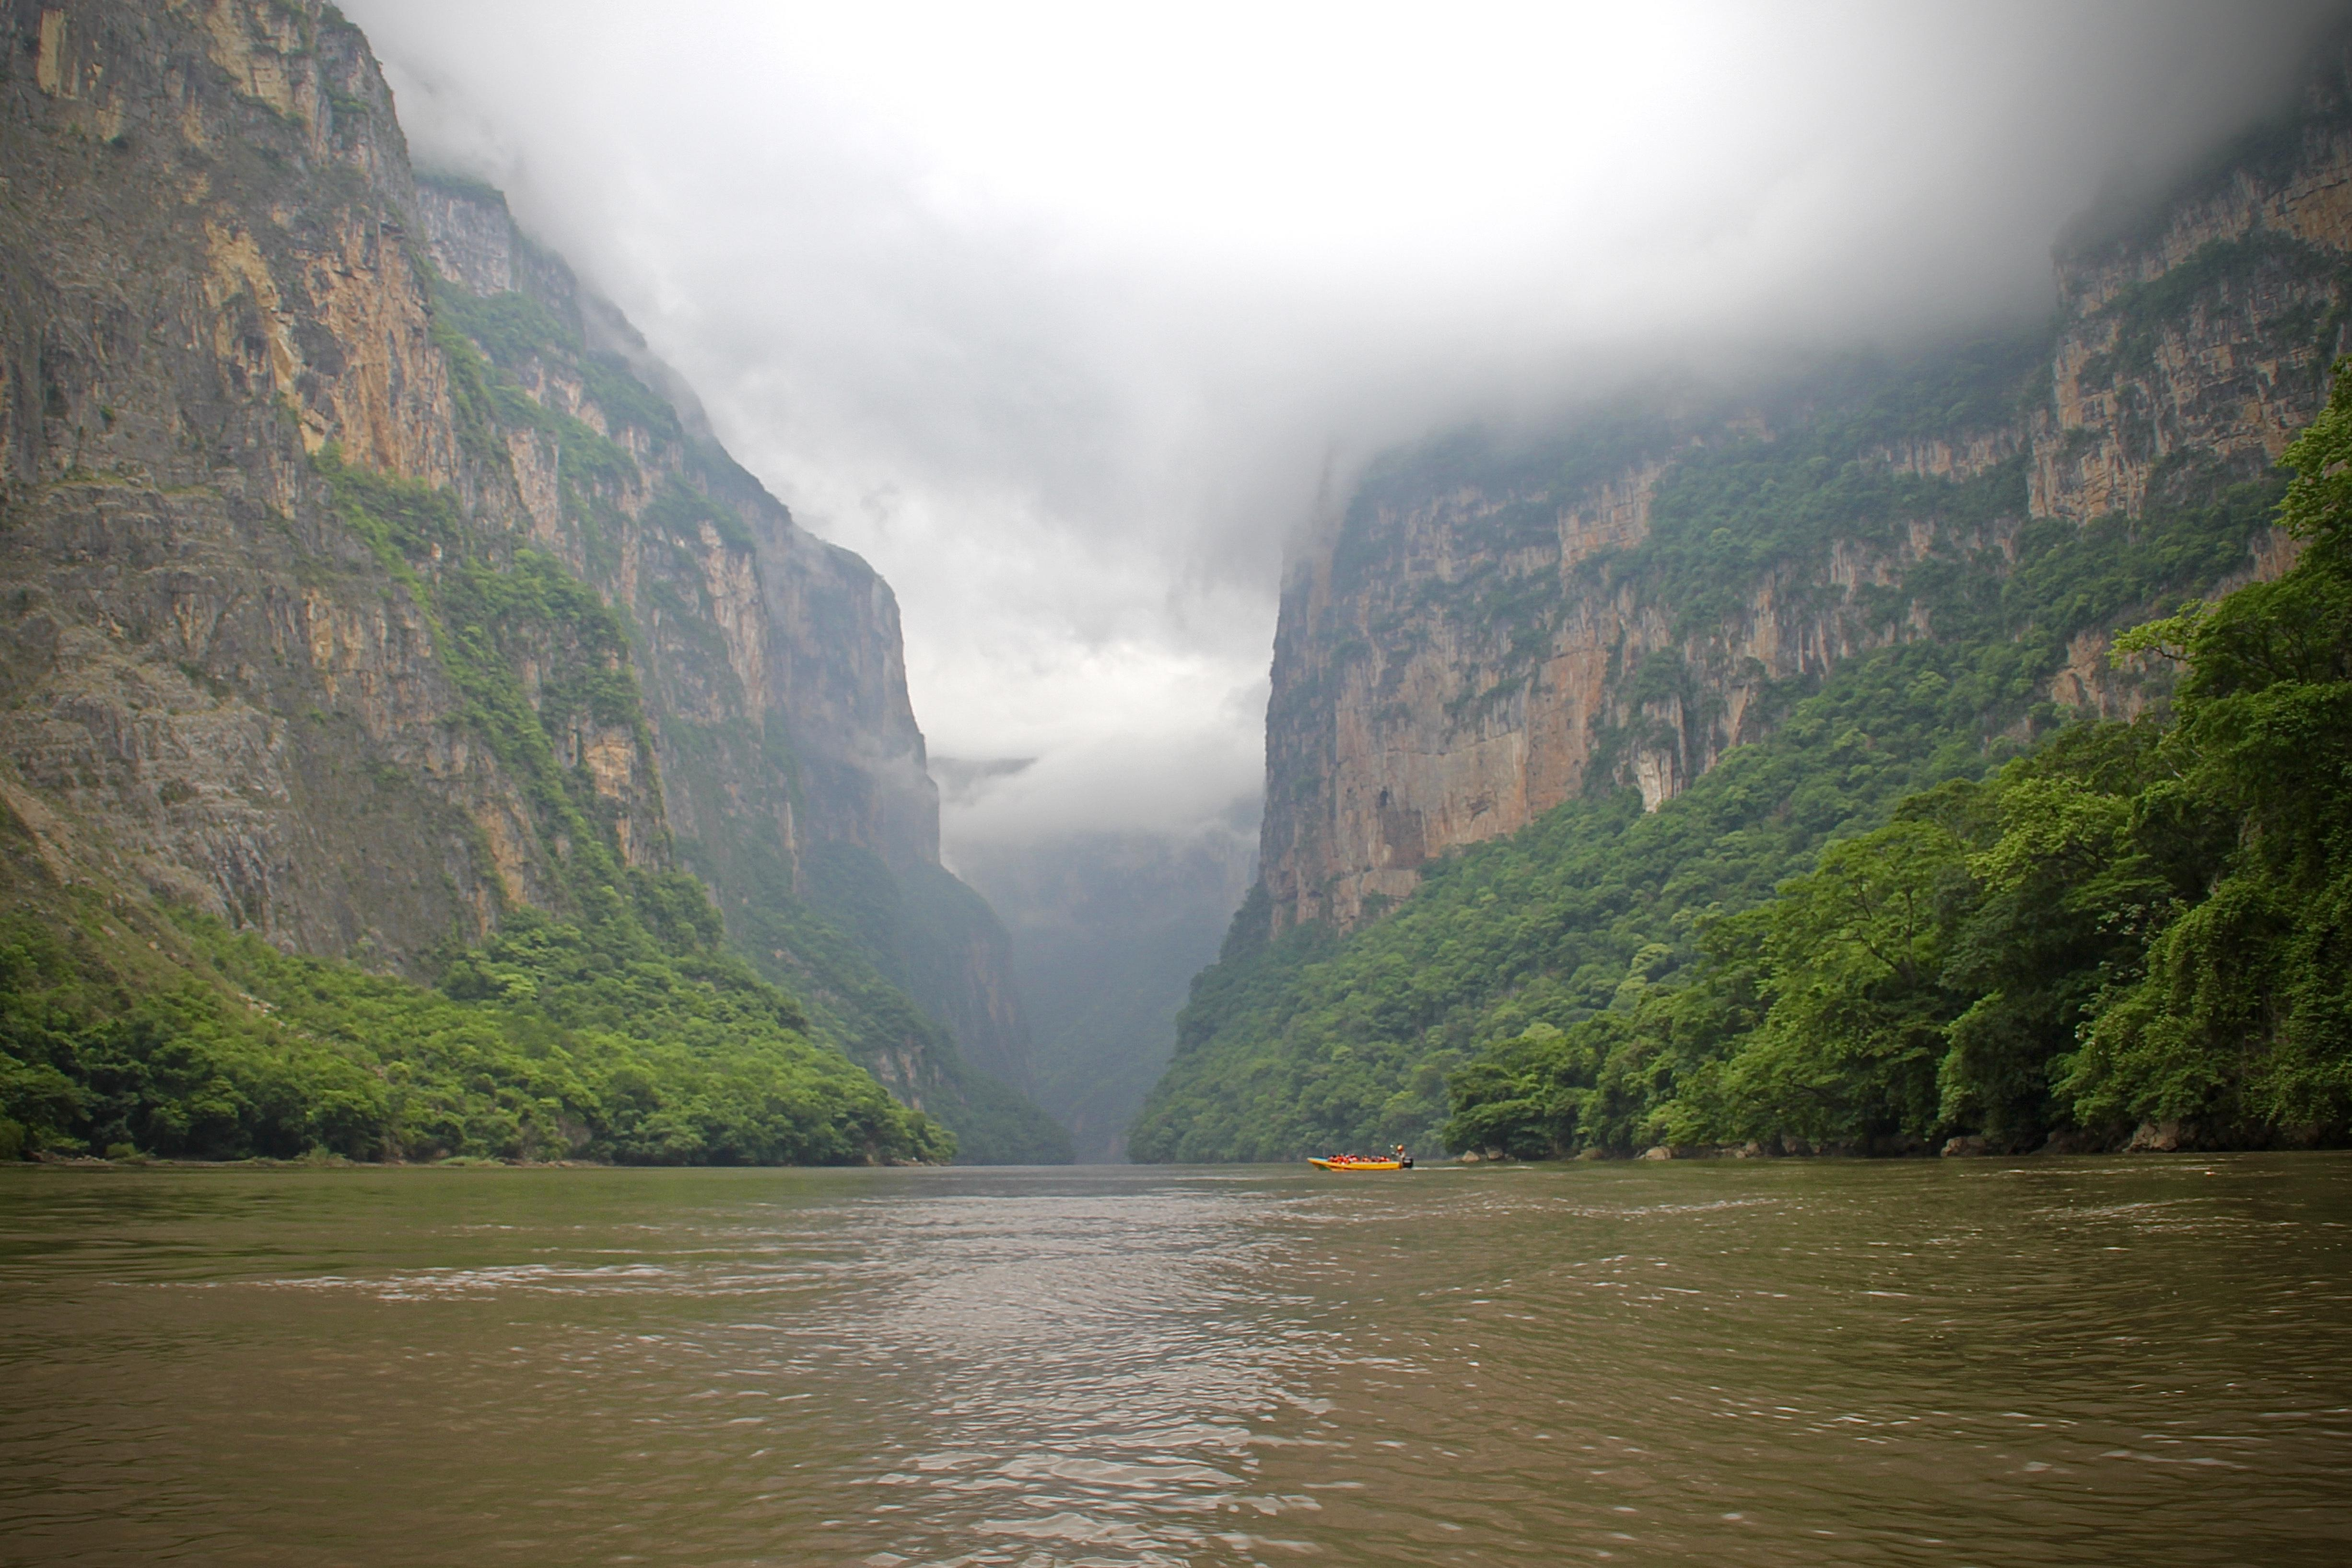 Sumidero Canyon, Chiapas, Mexico in Photos – Salt Trails